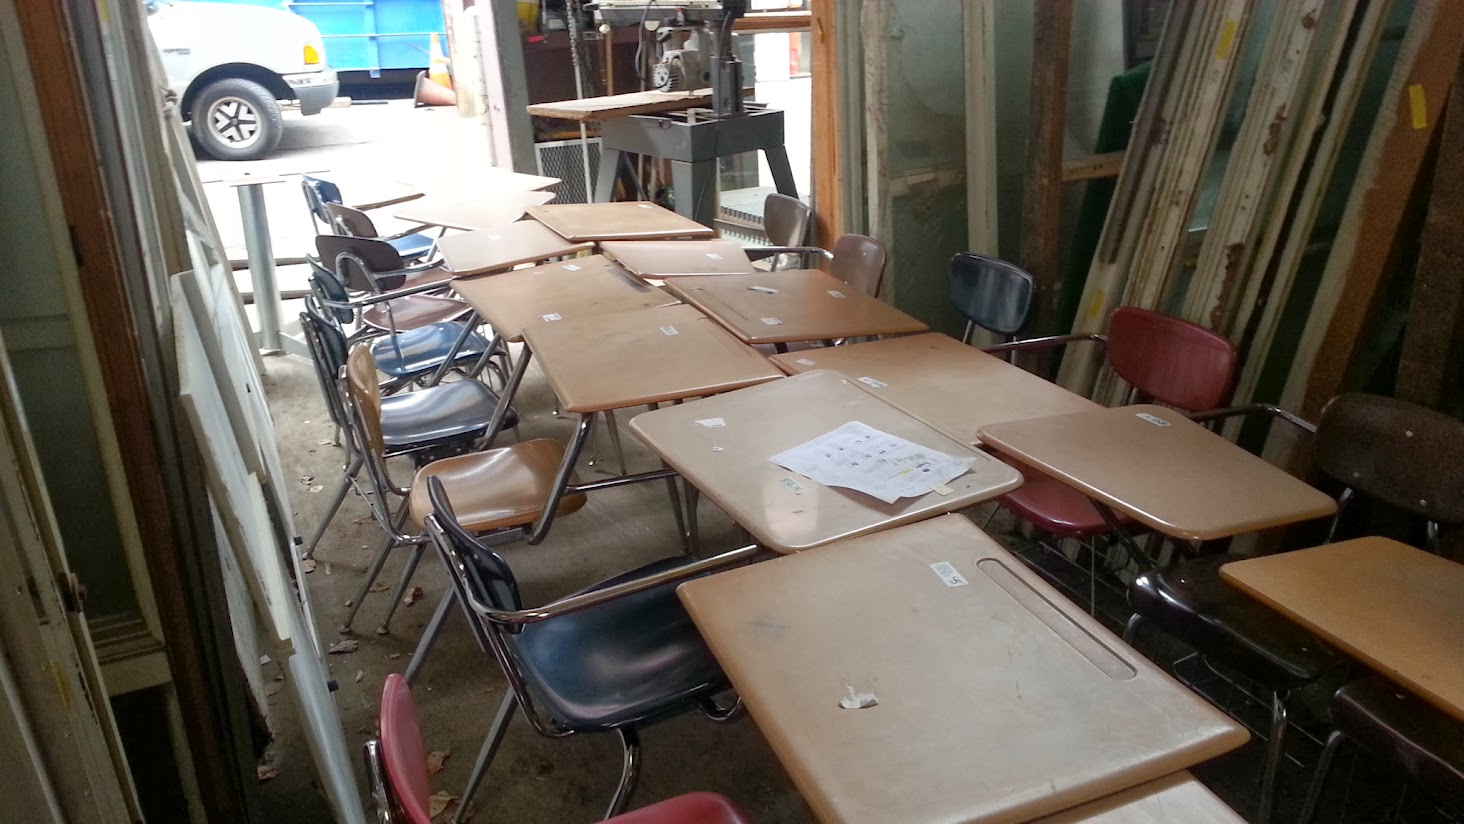 Twenty or so used school desks for sale at the Rebuilding Center